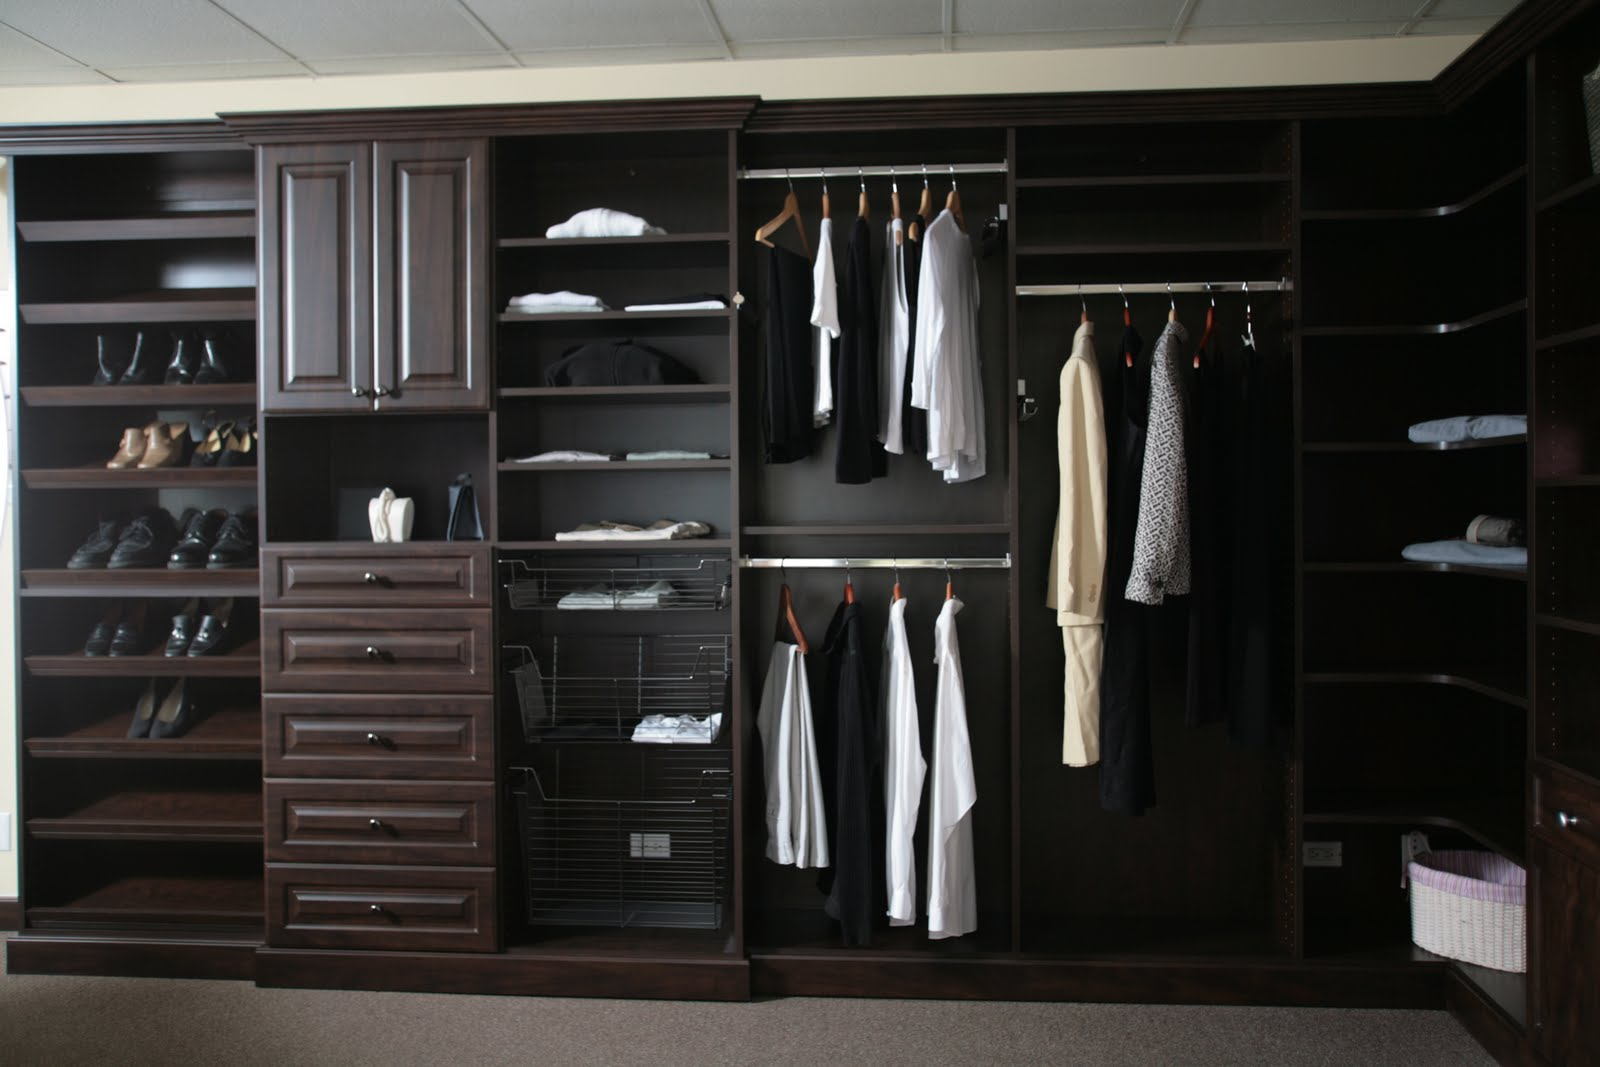 ... Dark Chocolate Kitchen Cabinets By All About Closets And More